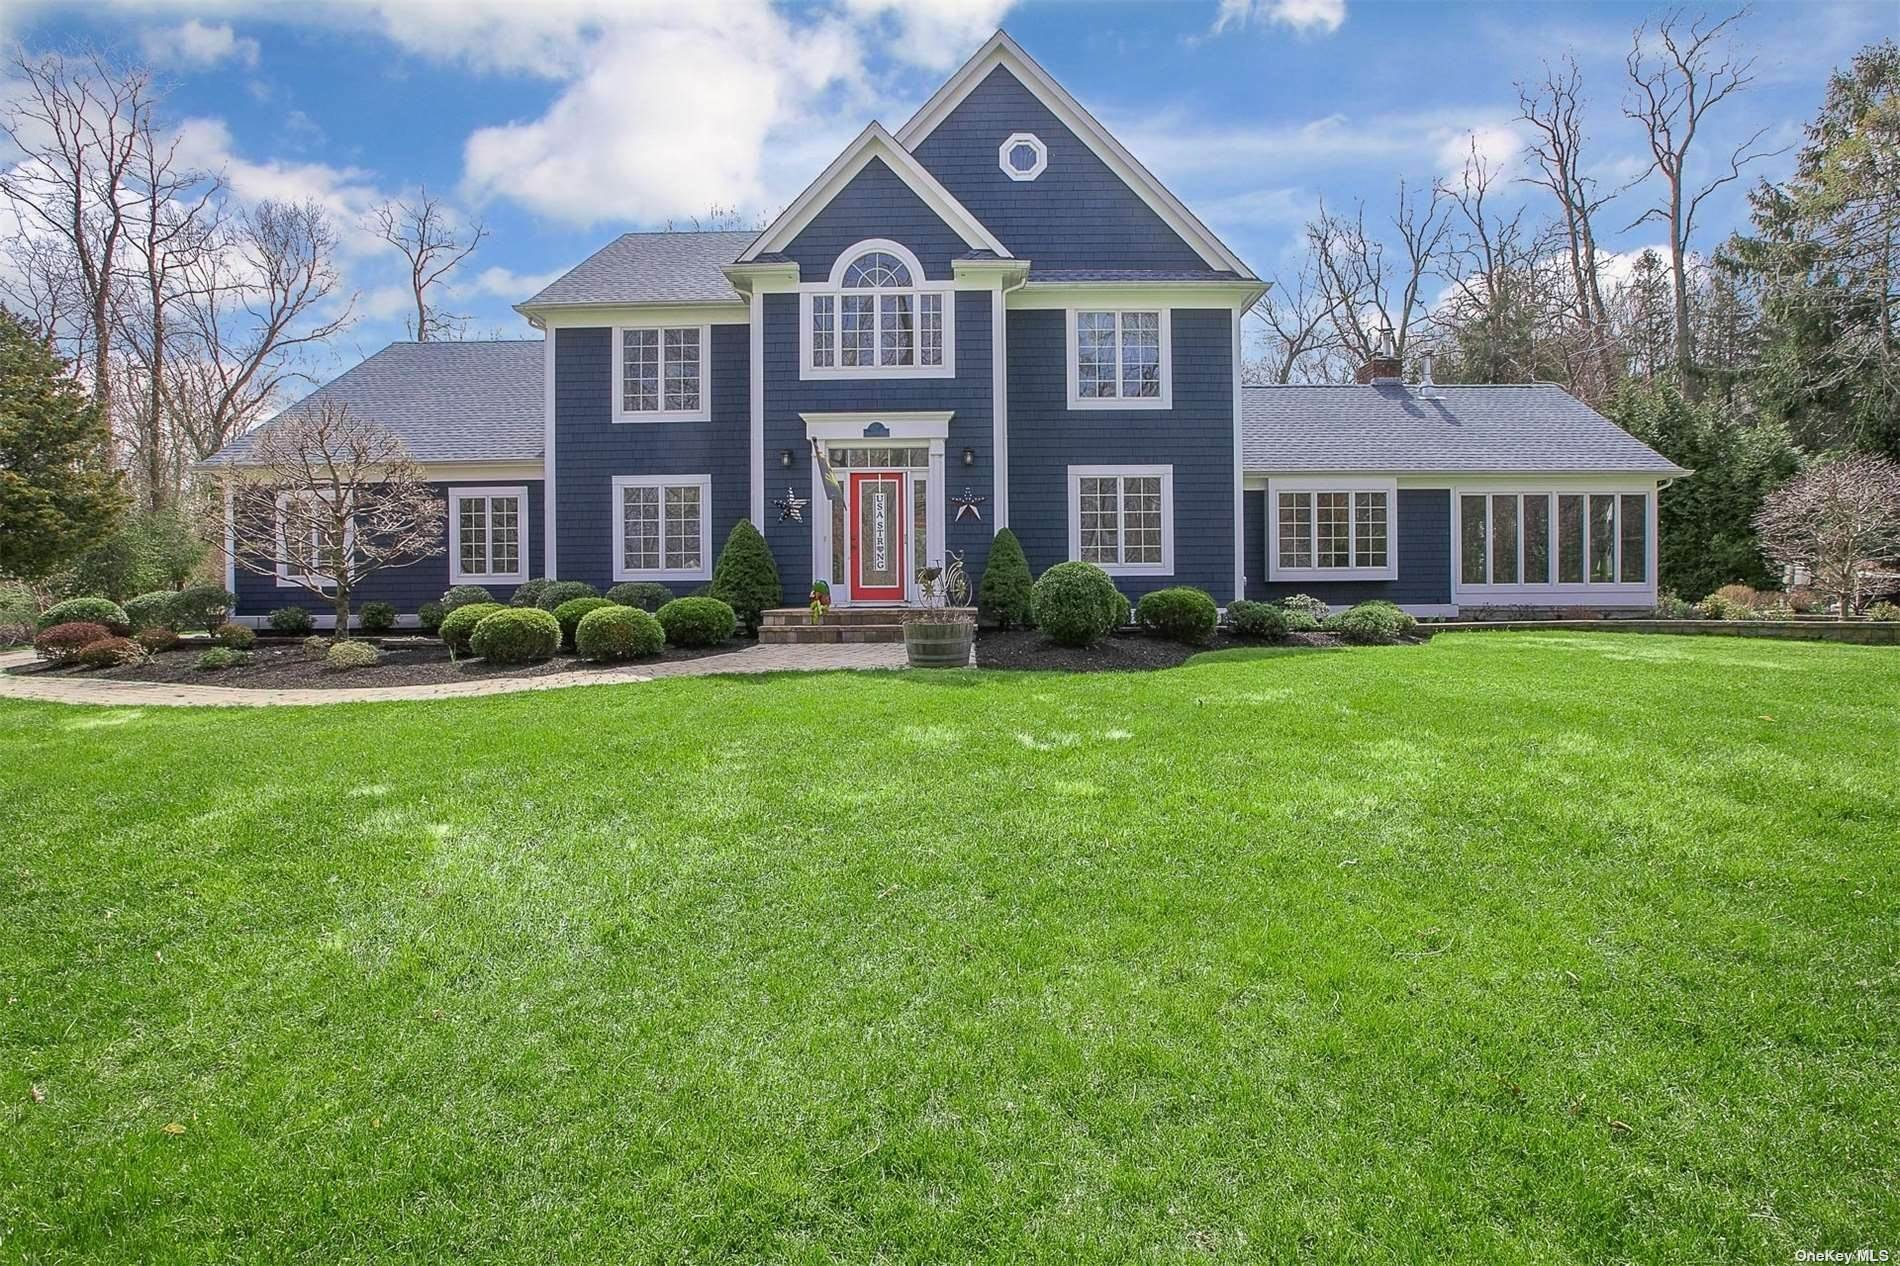 Residential for Sale at 27 Tower Hill Road Shoreham, New York 11786 United States